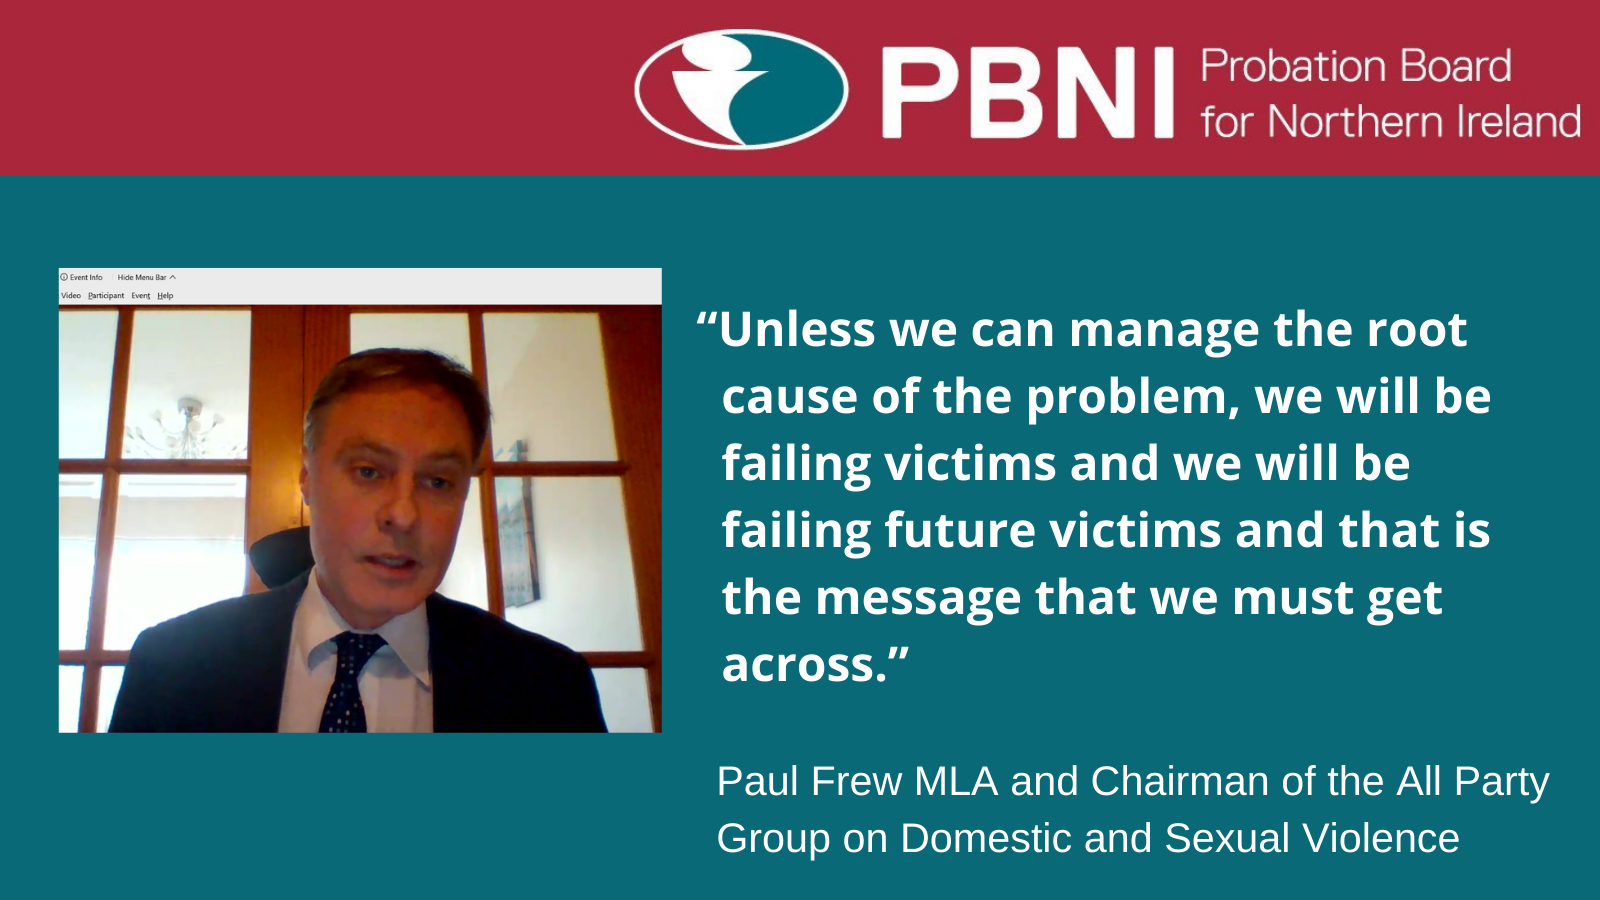 Paul Frew MLA, Chairman of the All Party Group on Domestic and Sexual Violence said